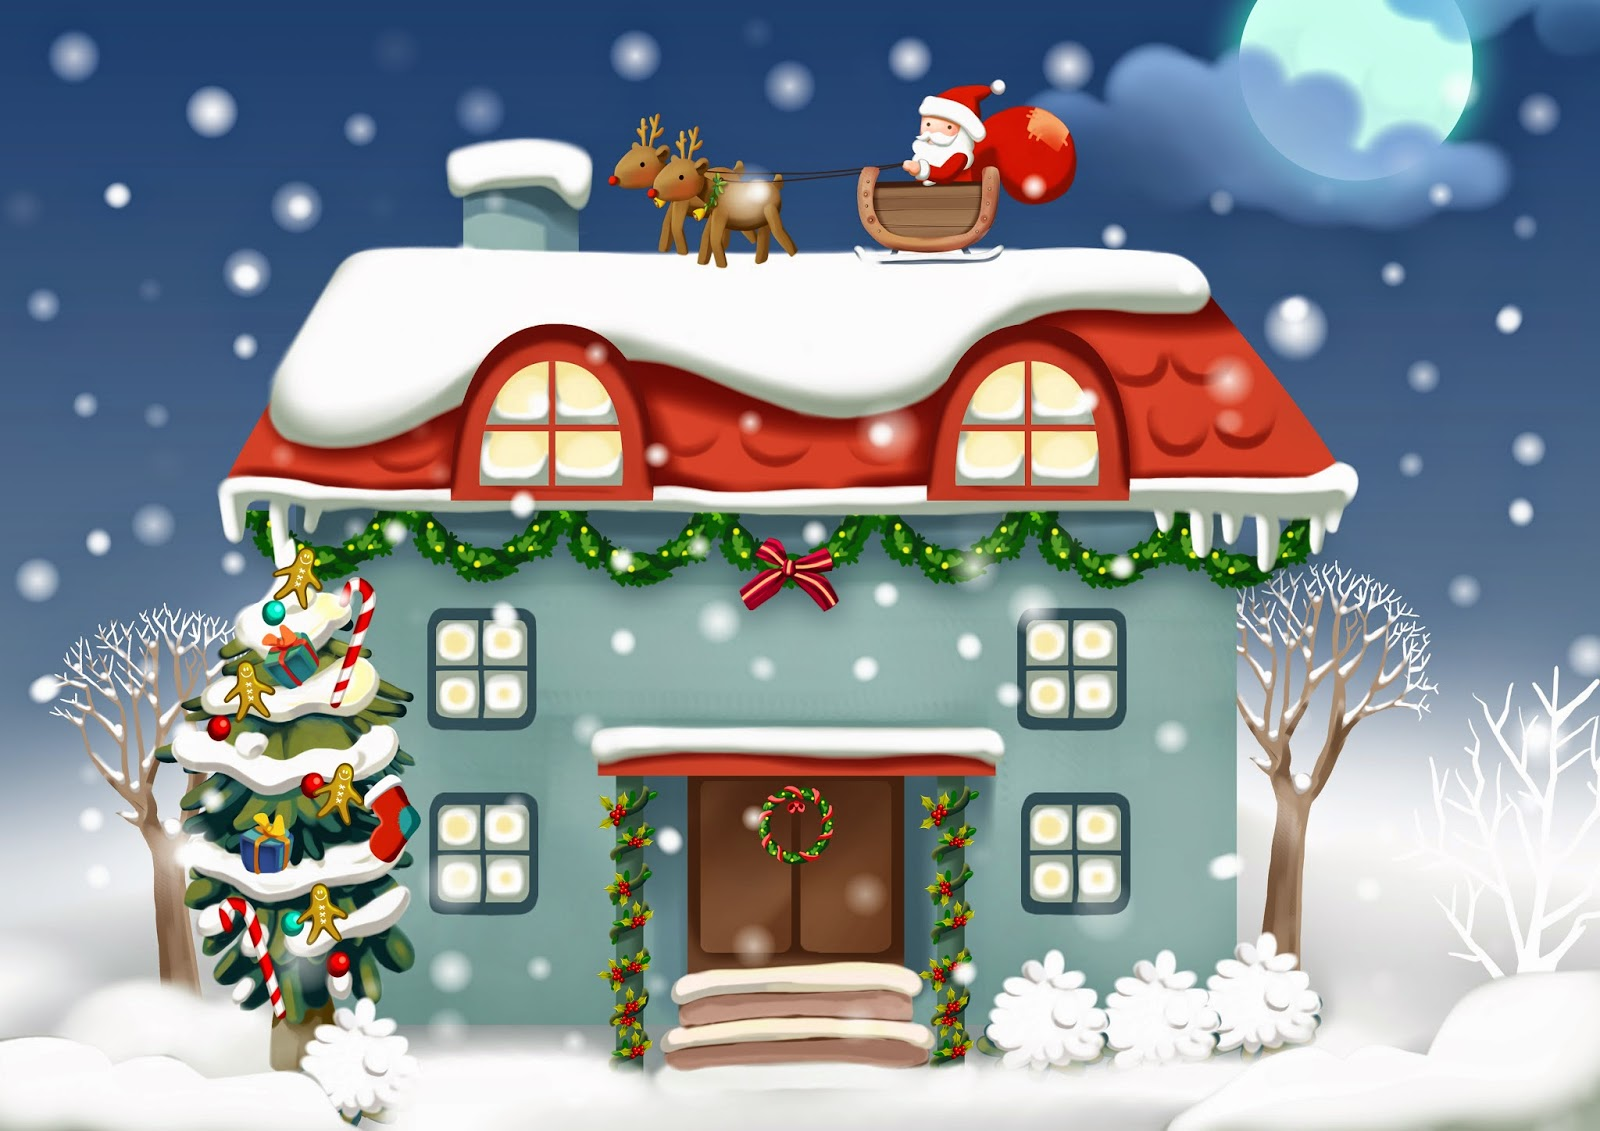 Santa-riding-over-house-roof-top-chimney-in-snow-cartoon-image-picture-4961x3508.jpg